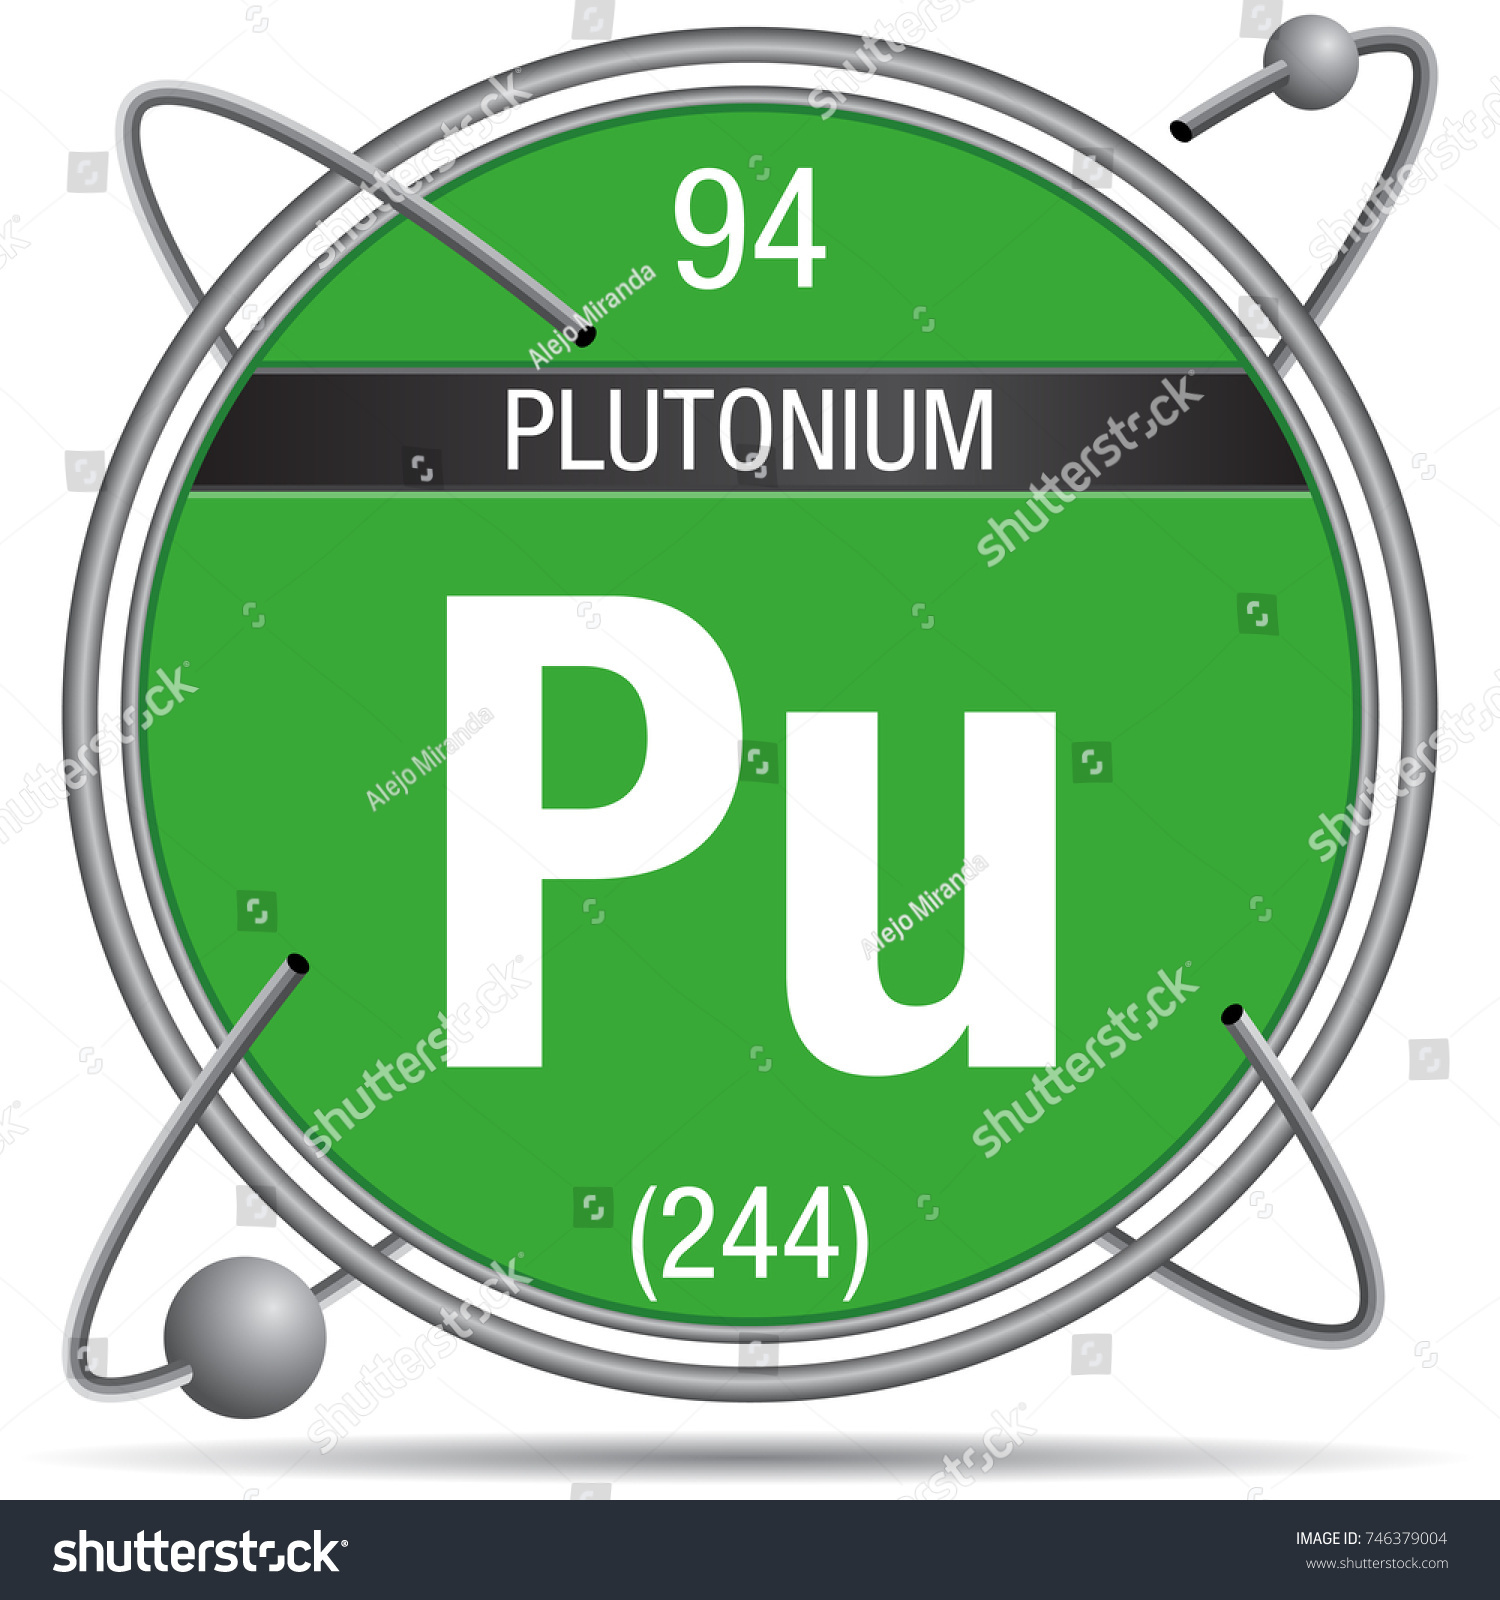 Plutonium symbol inside metal ring colored stock vector 746379004 plutonium symbol inside a metal ring with colored background and spheres orbiting around element number biocorpaavc Image collections